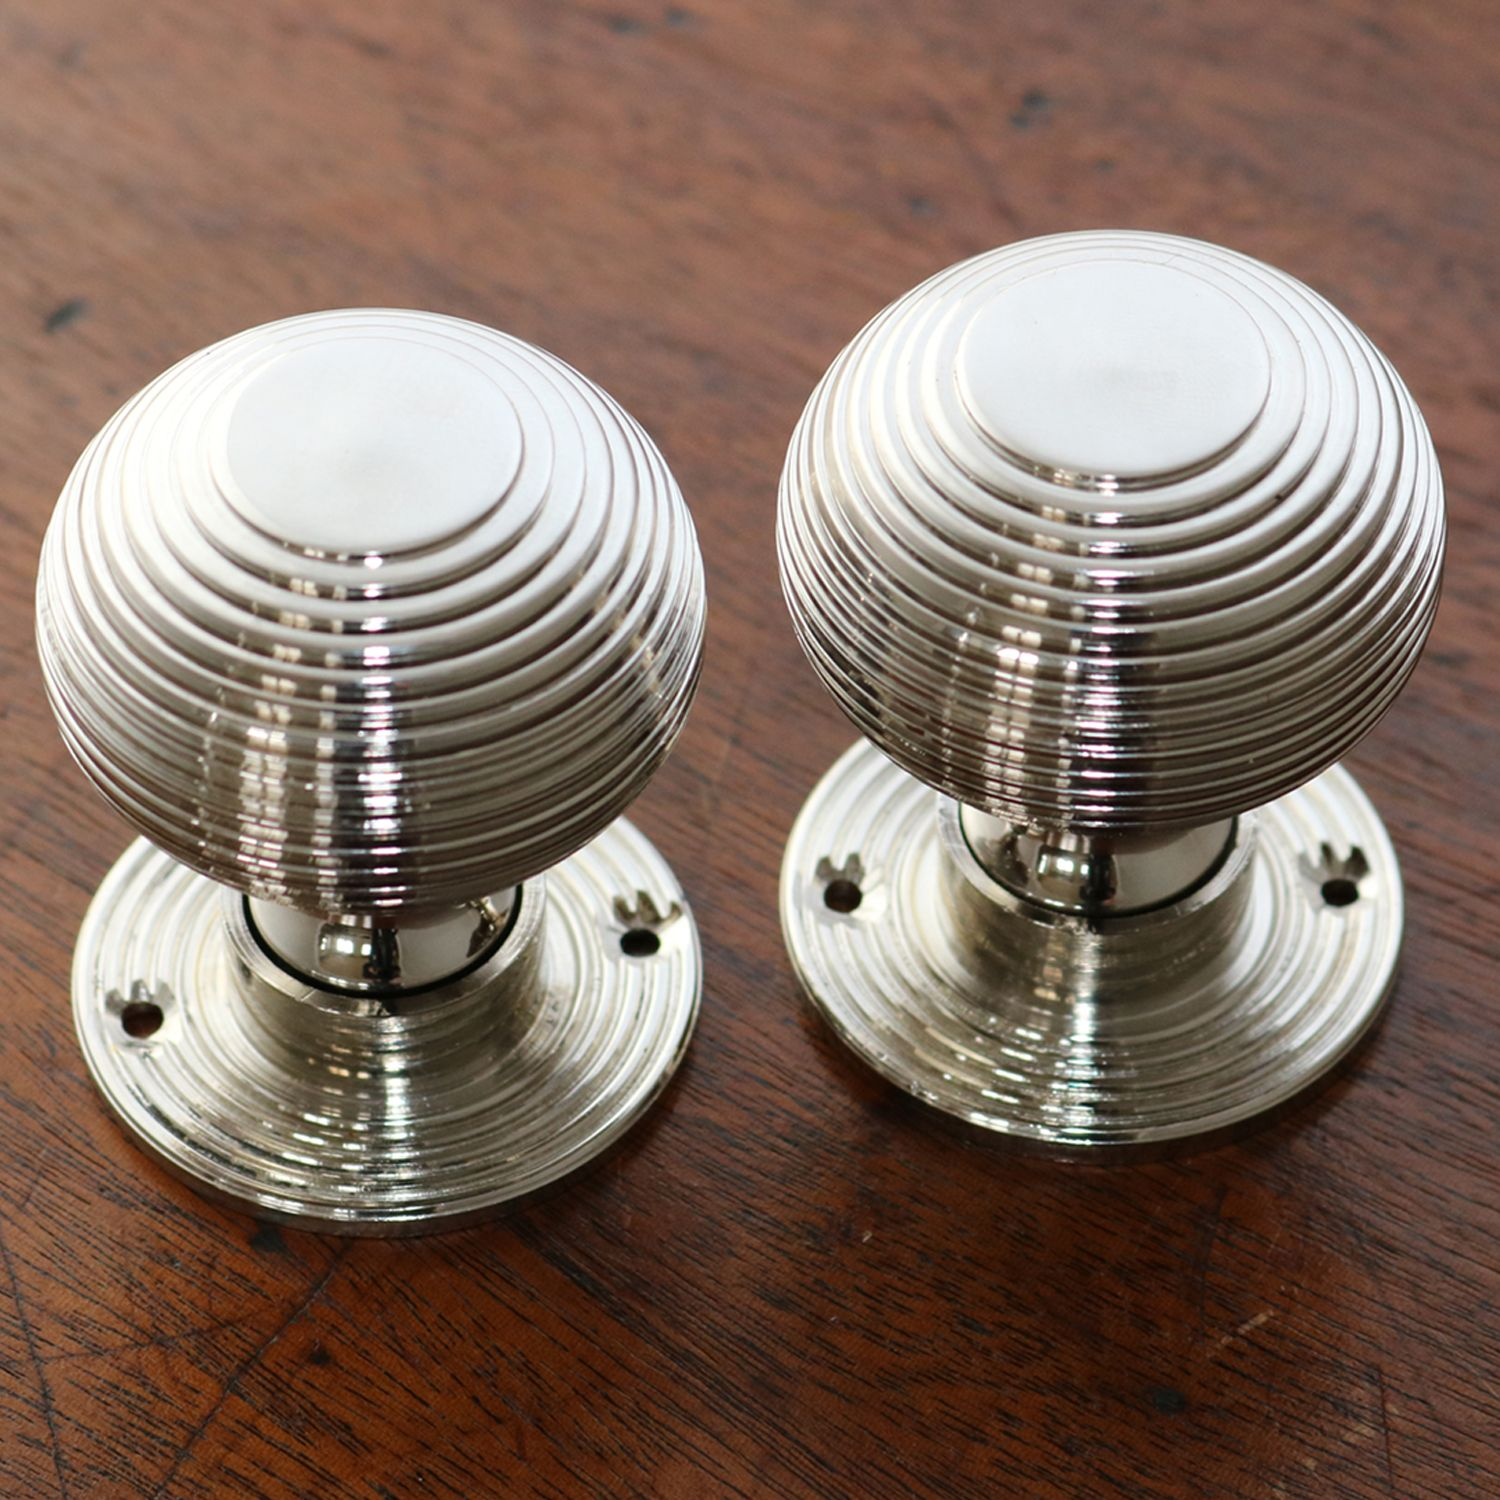 A Pair Of Solid Polished Nickel Beehive Door Knobs. Faithful And True  Reproduction Turned From A Solid Brass Bar Suitable For Use With Mortice Or  Rim Locks ...